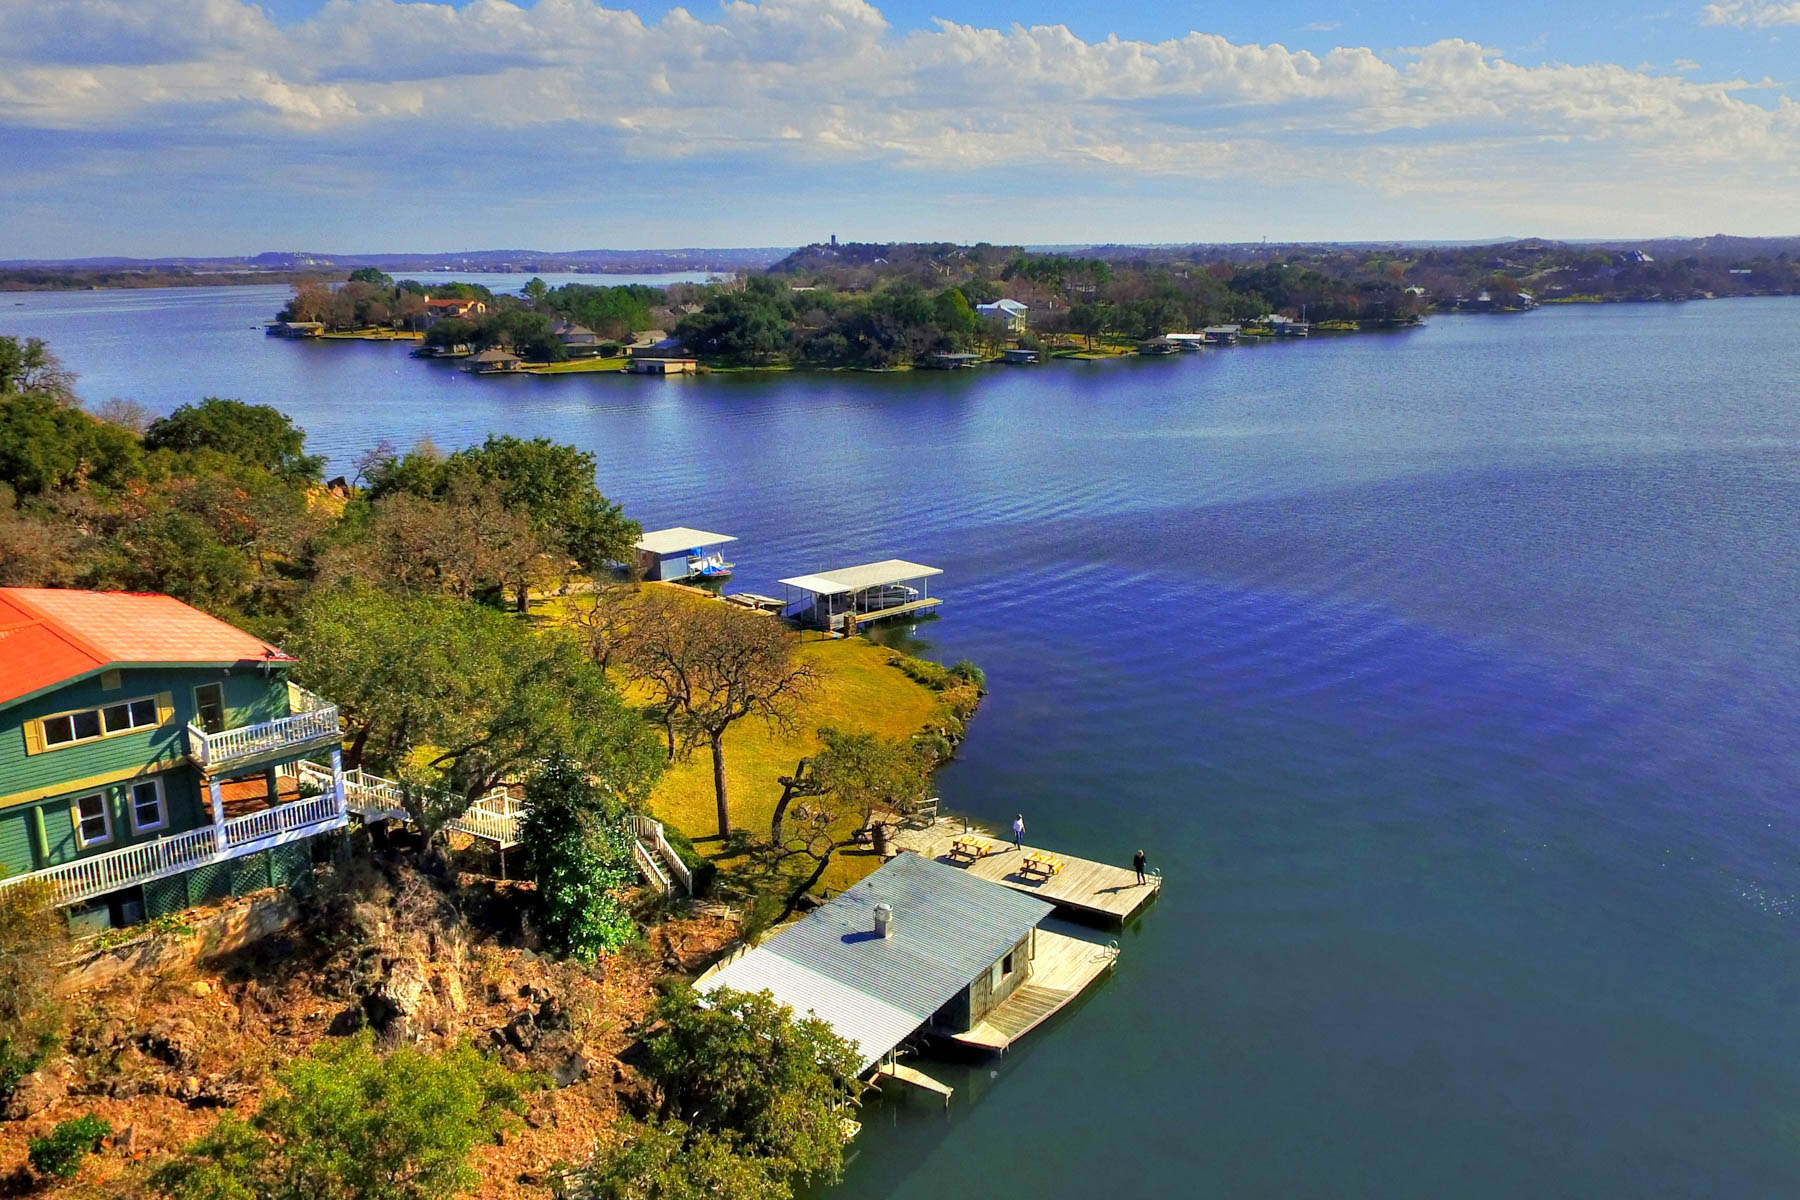 Property For Sale at Hilltop Home Overlooking Lake LBJ